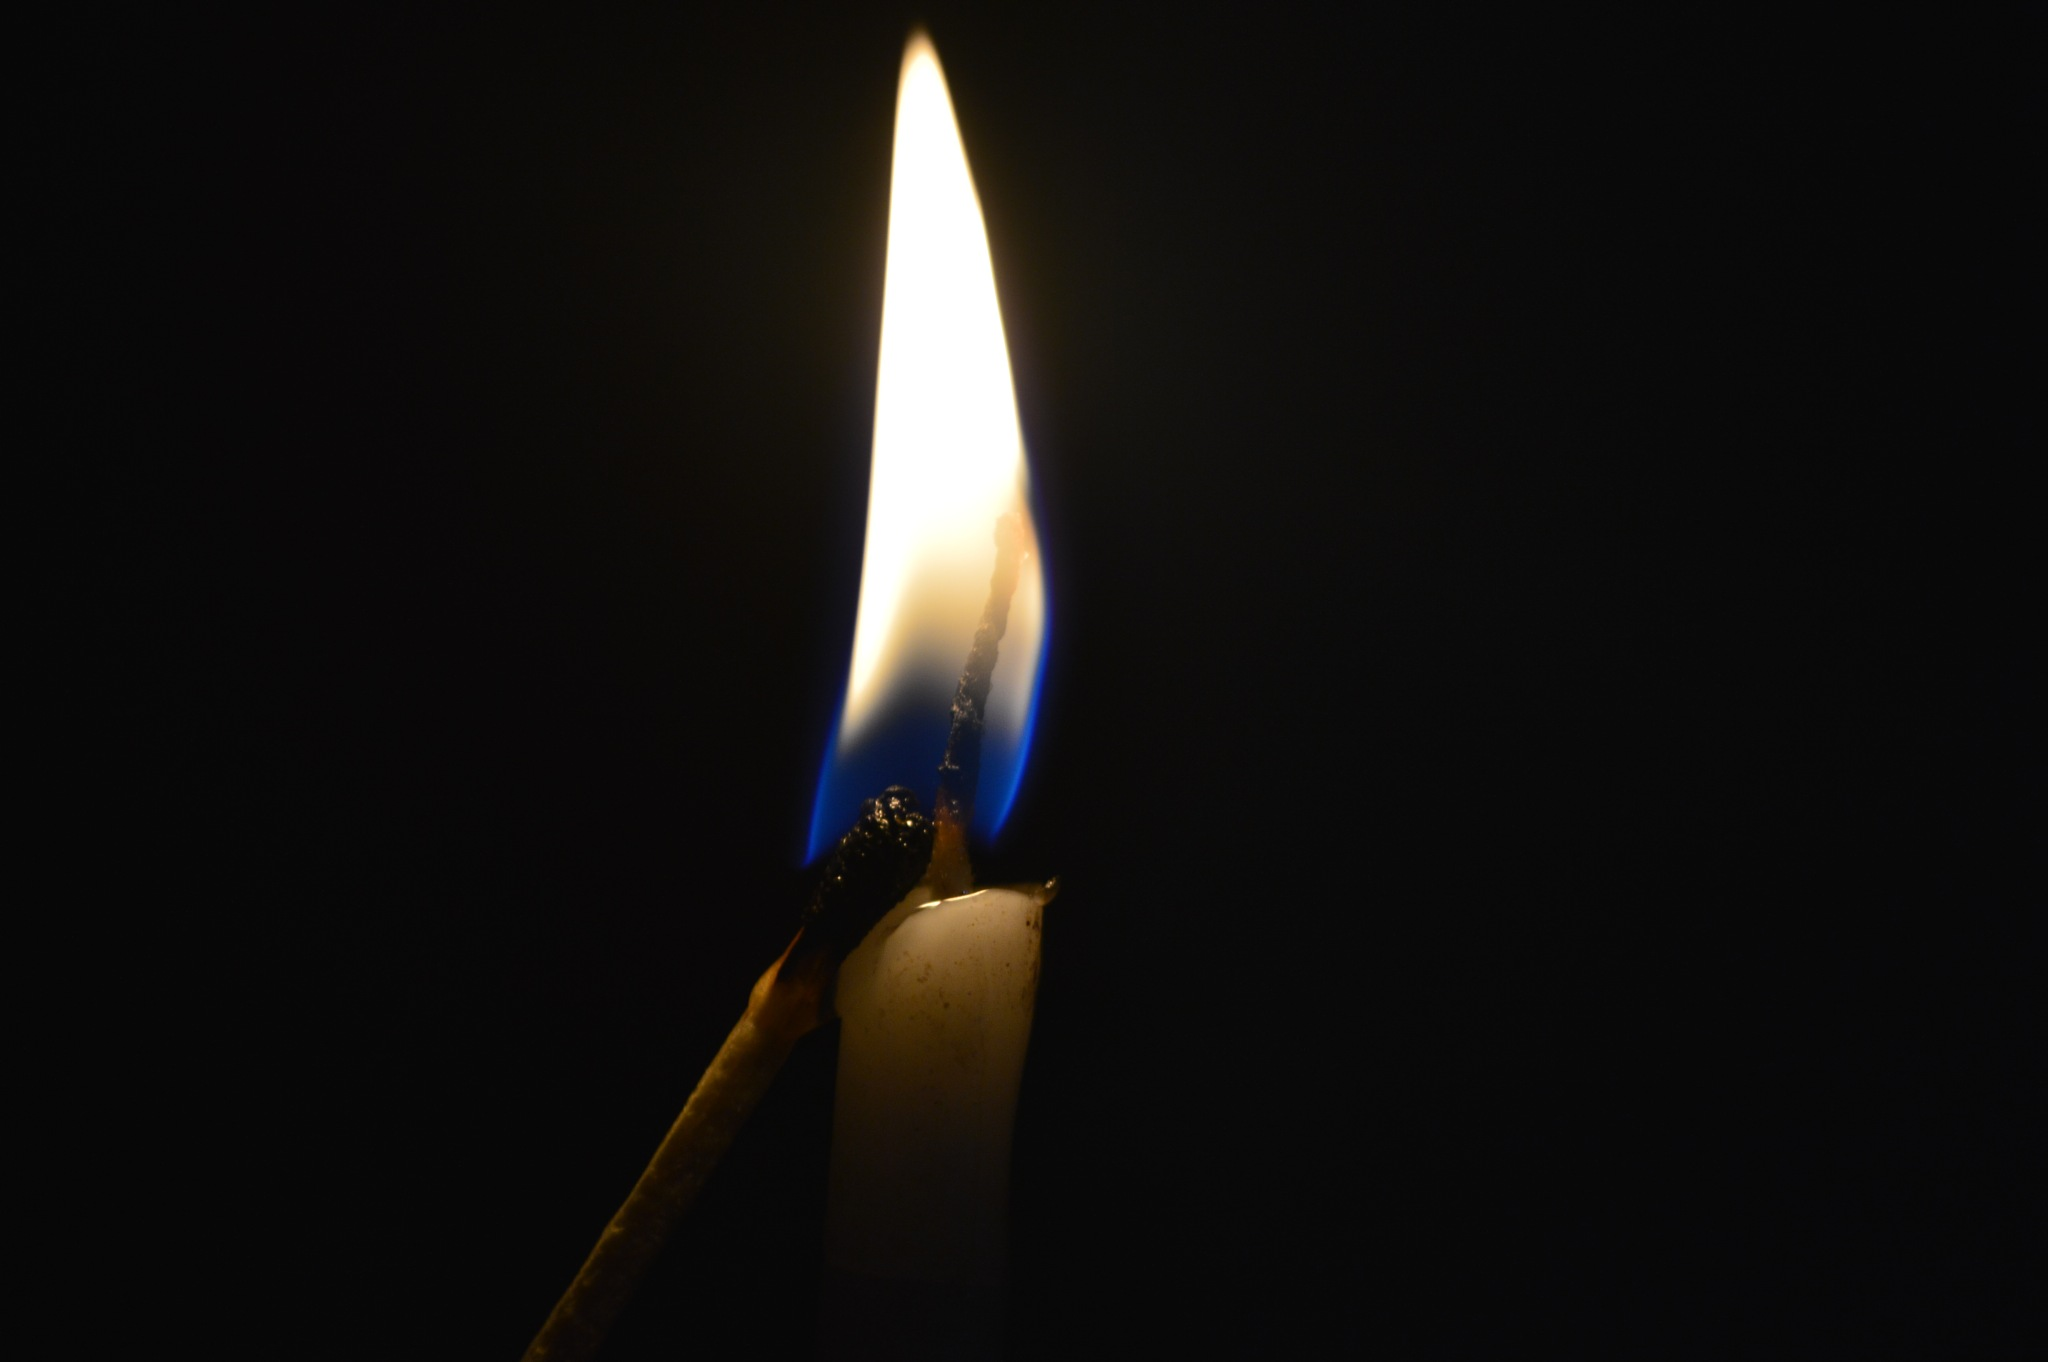 The Support of a candle to a Matchstick by Rachit Shrivastava